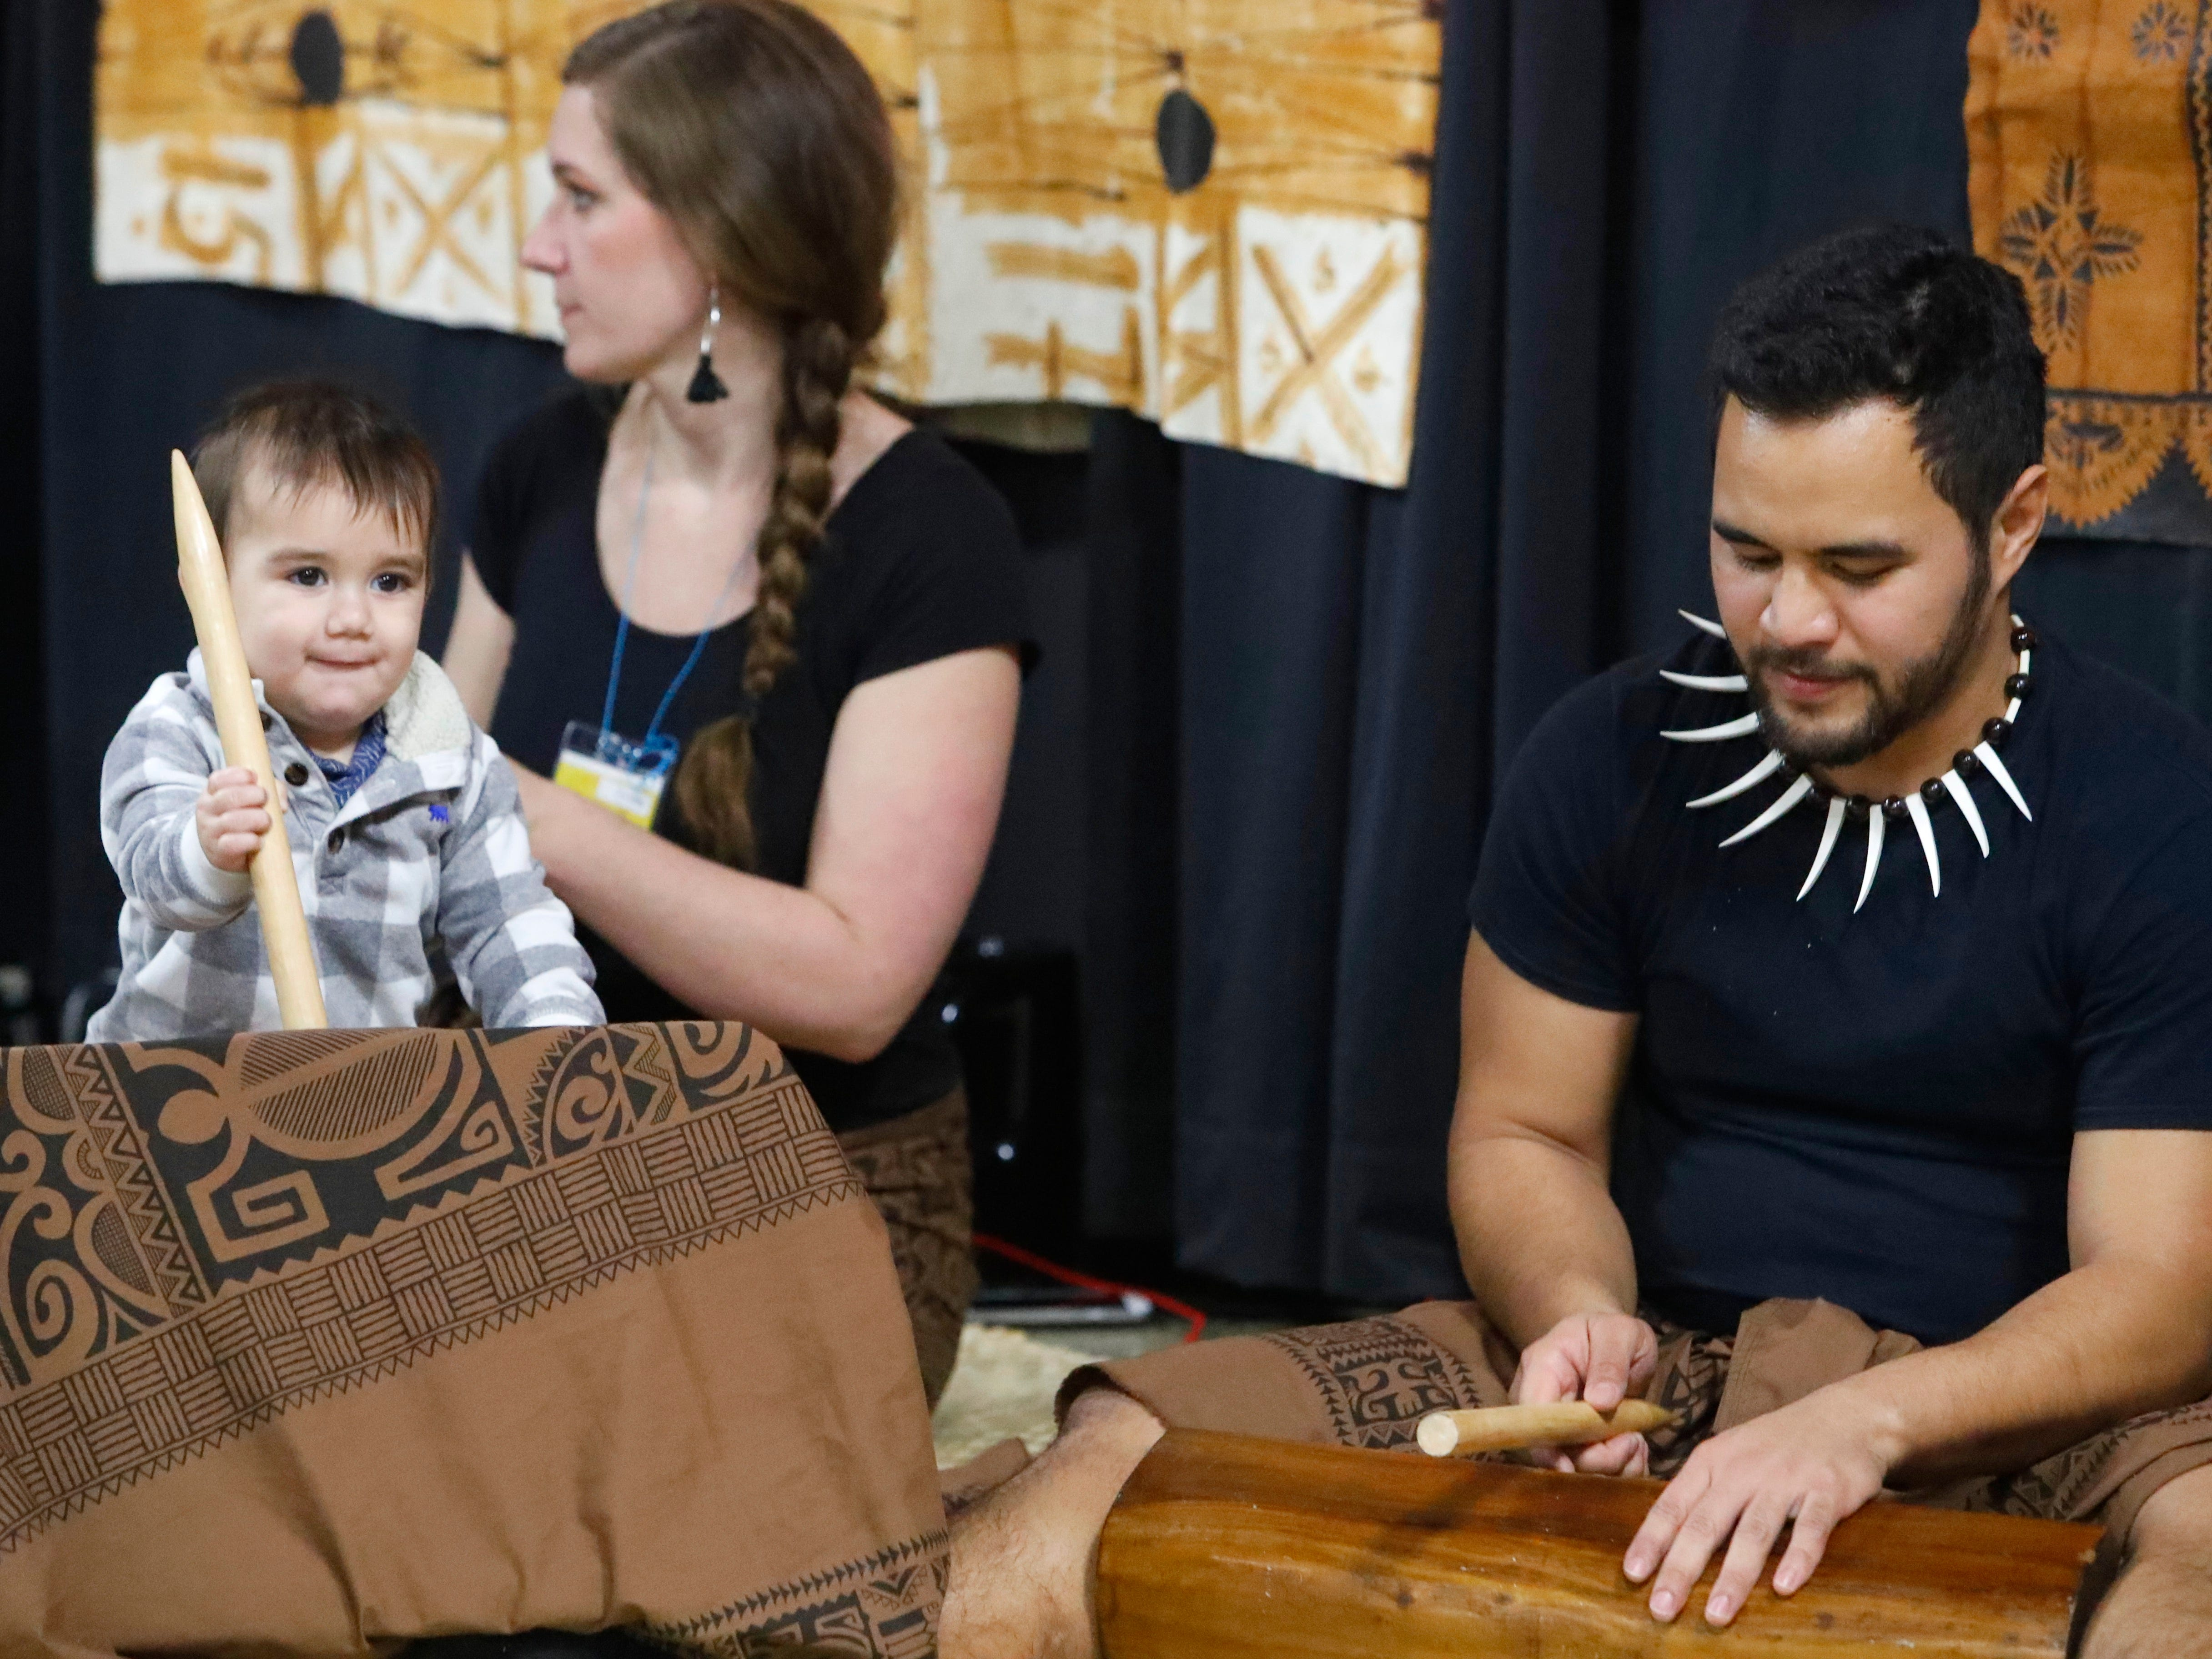 The Pacific Islands display featured drumming during the annual Festival of Cultures in the Redding Civic Auditorium on Feb. 9, 2019.